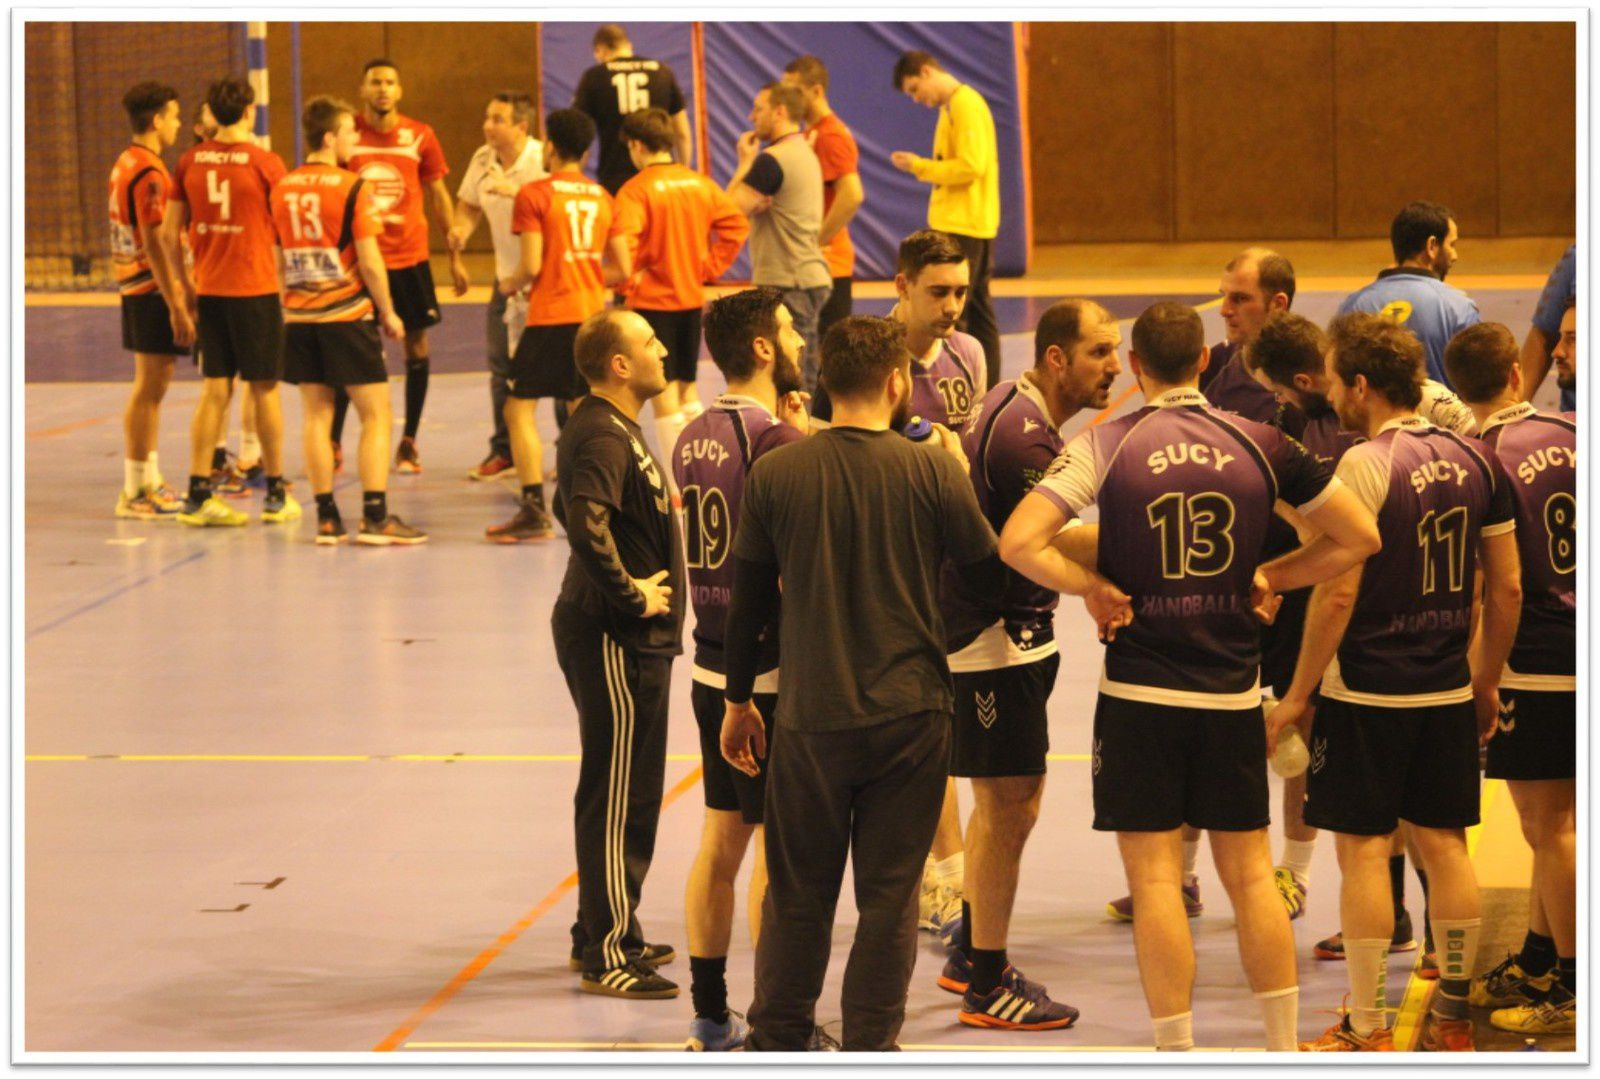 THBMLV 2 vs SUCY-EN-BRIE (Pré-Nationale) 26.03.2016